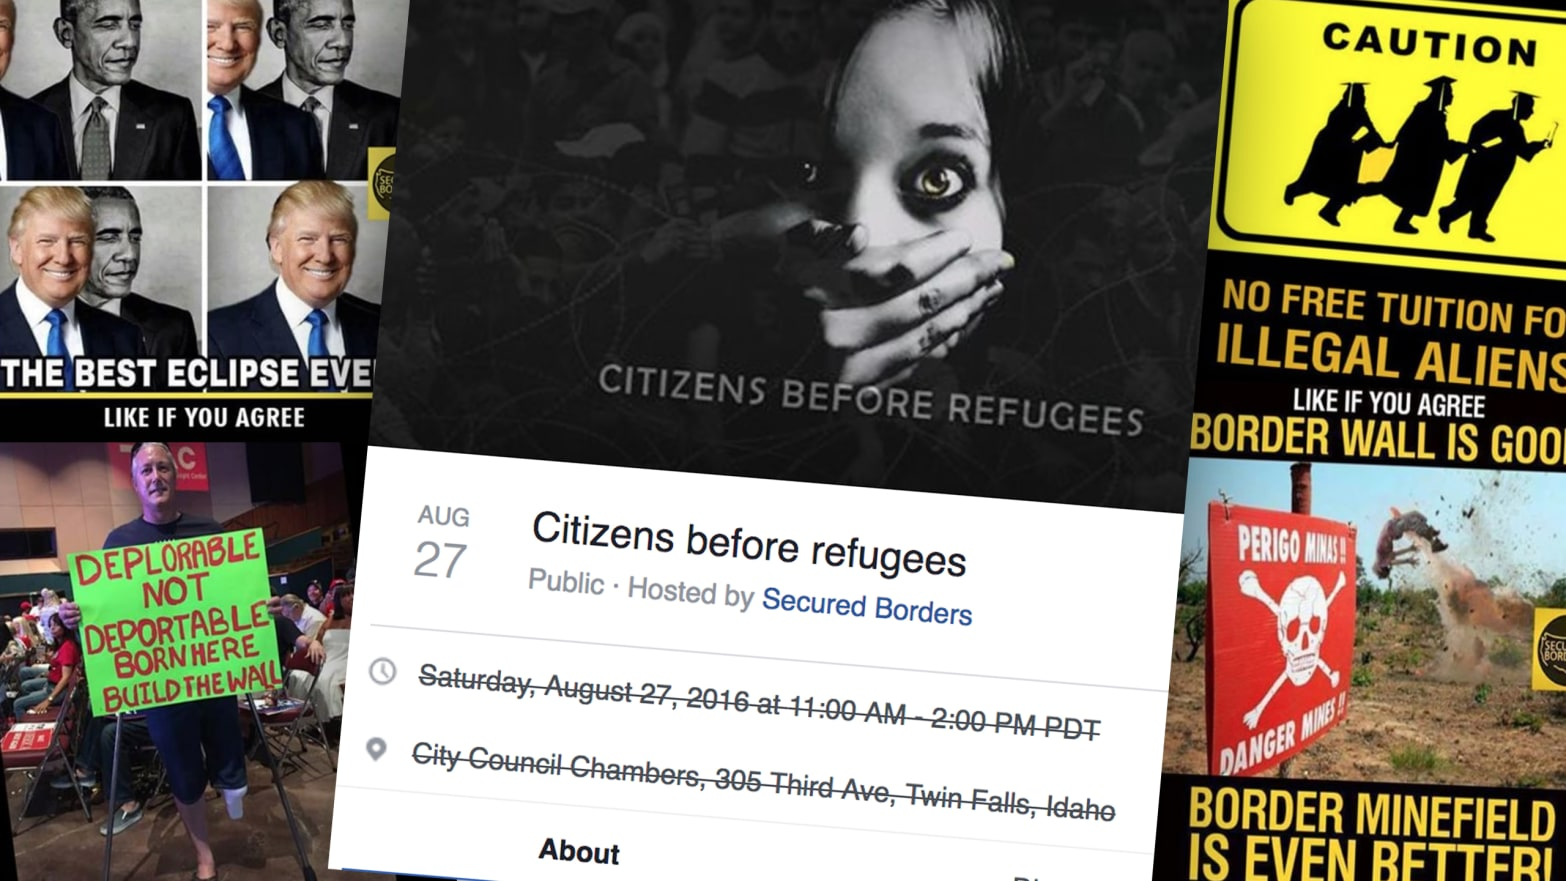 Russia Used Facebook Events to Organize Anti-Immigrant Rallies on U.S. Soil